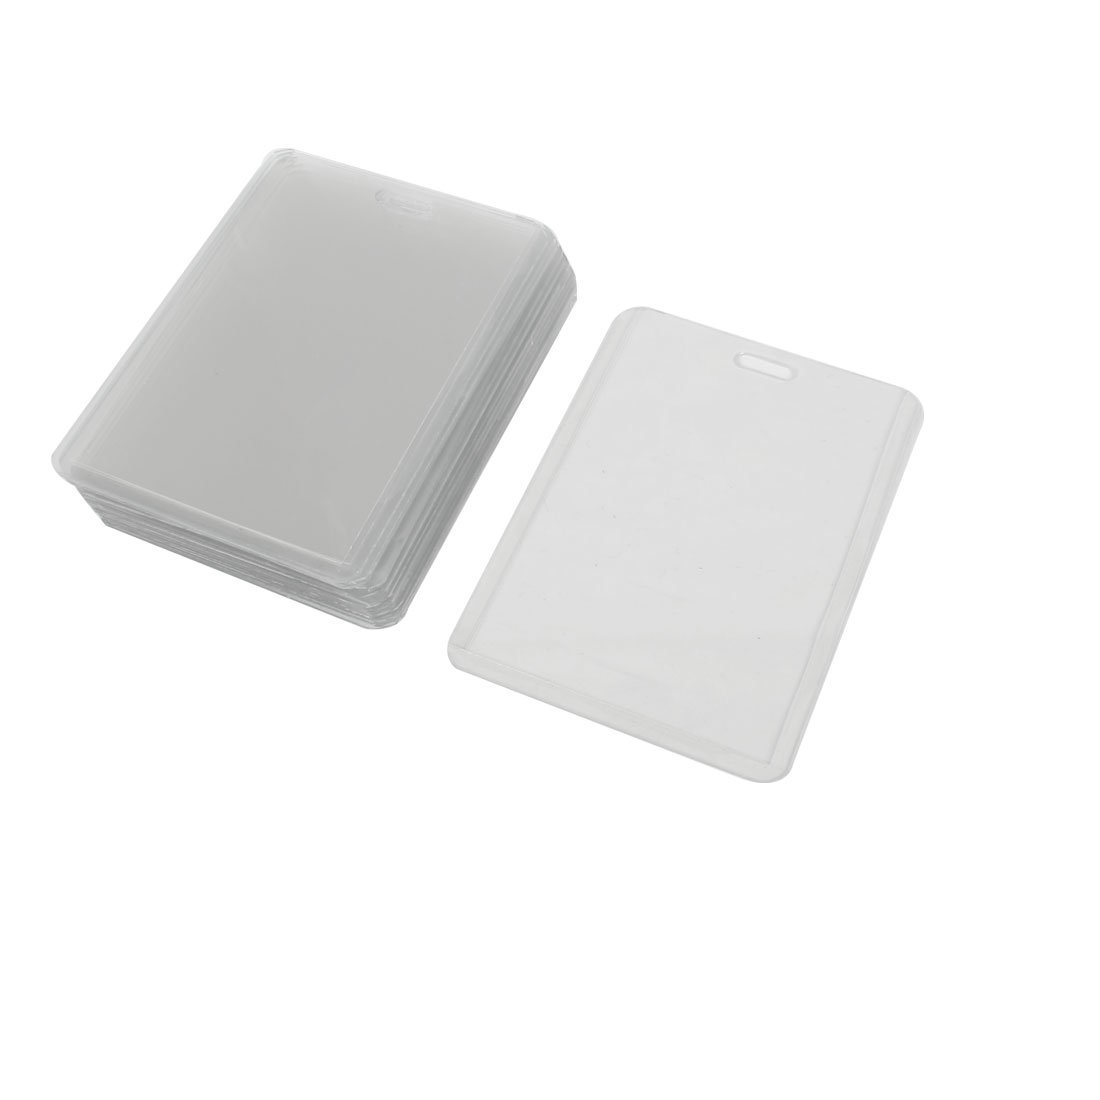 Uxcell Plastic Vertical Business Working Id Badge Card Holders Clear 20 Pieces